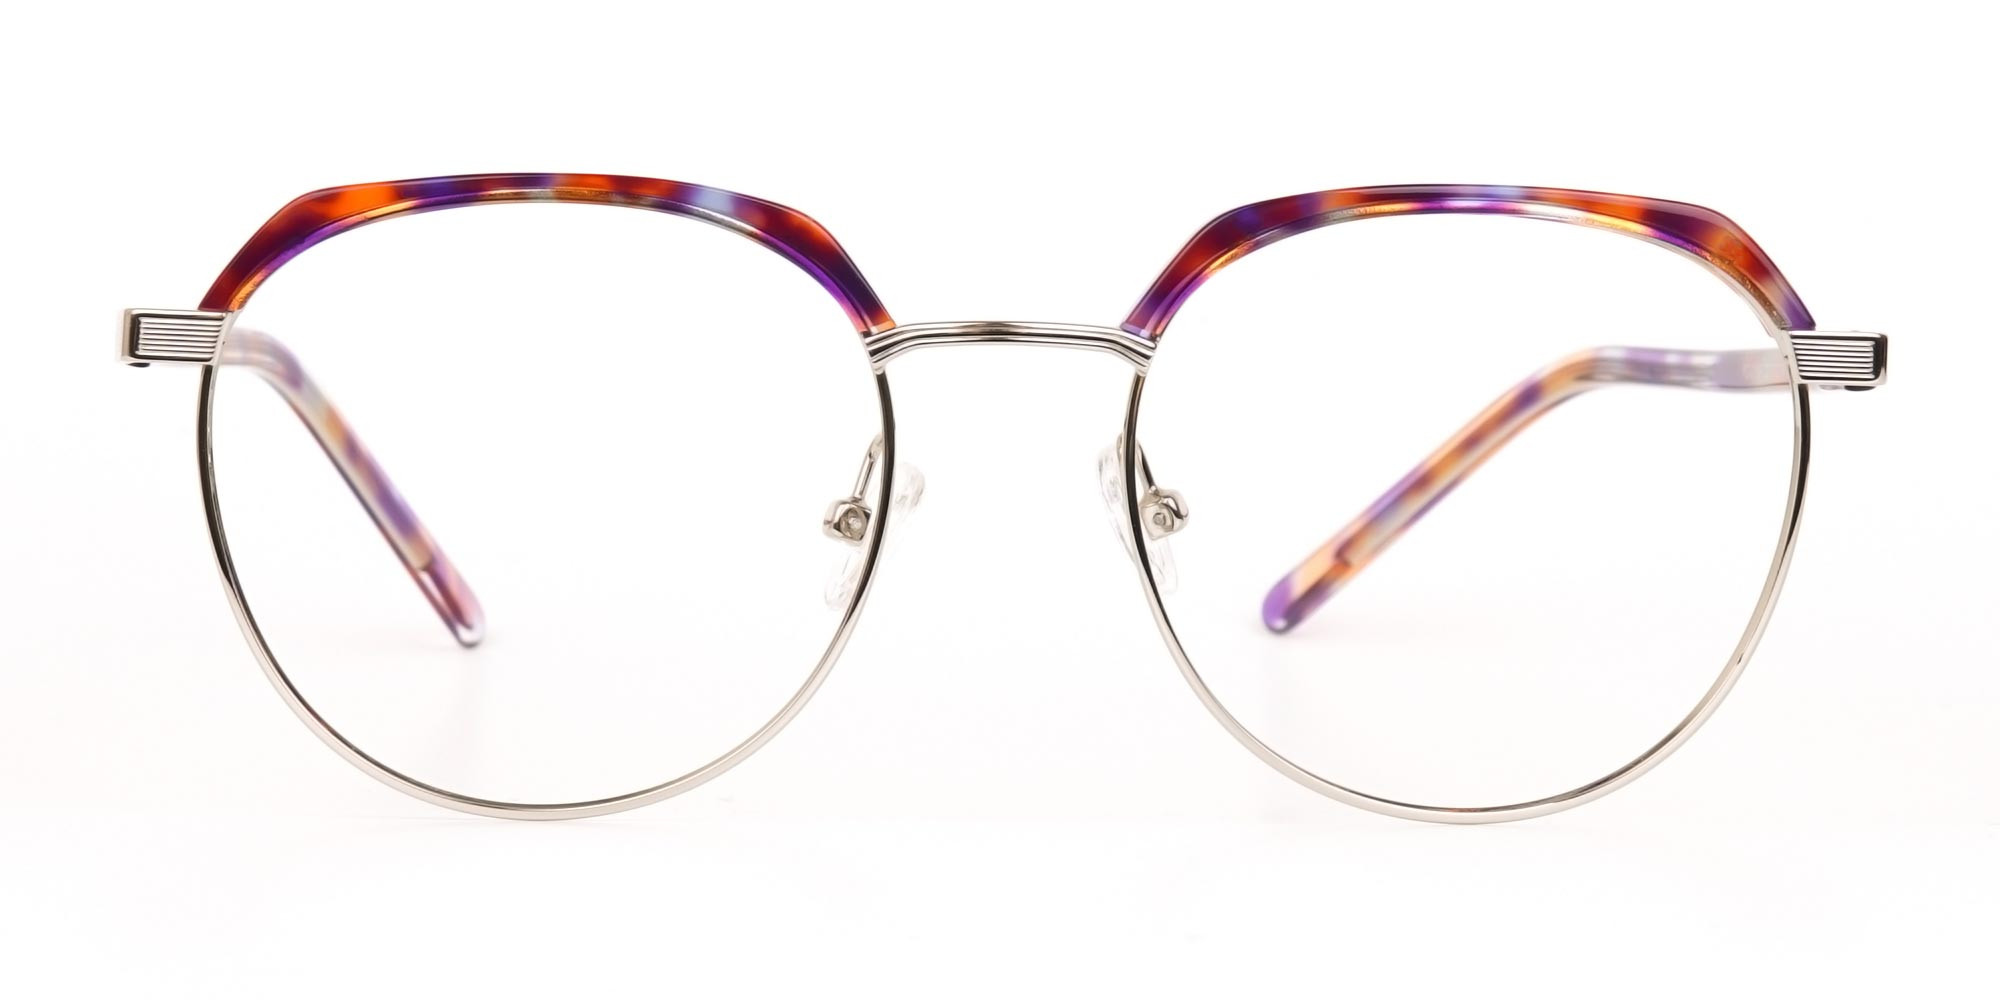 Passion Orange, Purple & Silver Browline Glasses-1